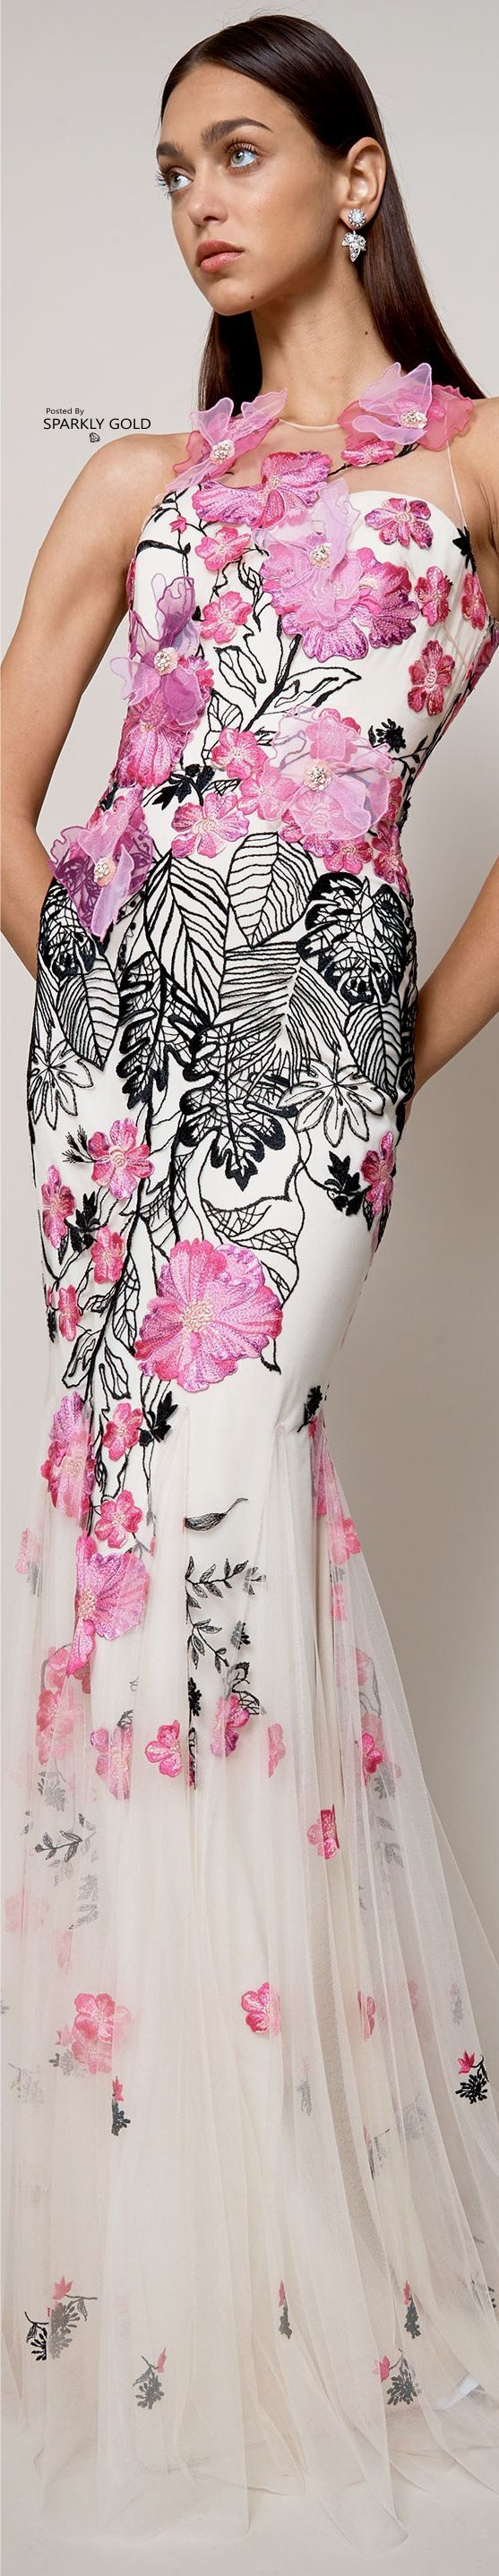 117775 Best Images About The Art Of Dress On Pinterest